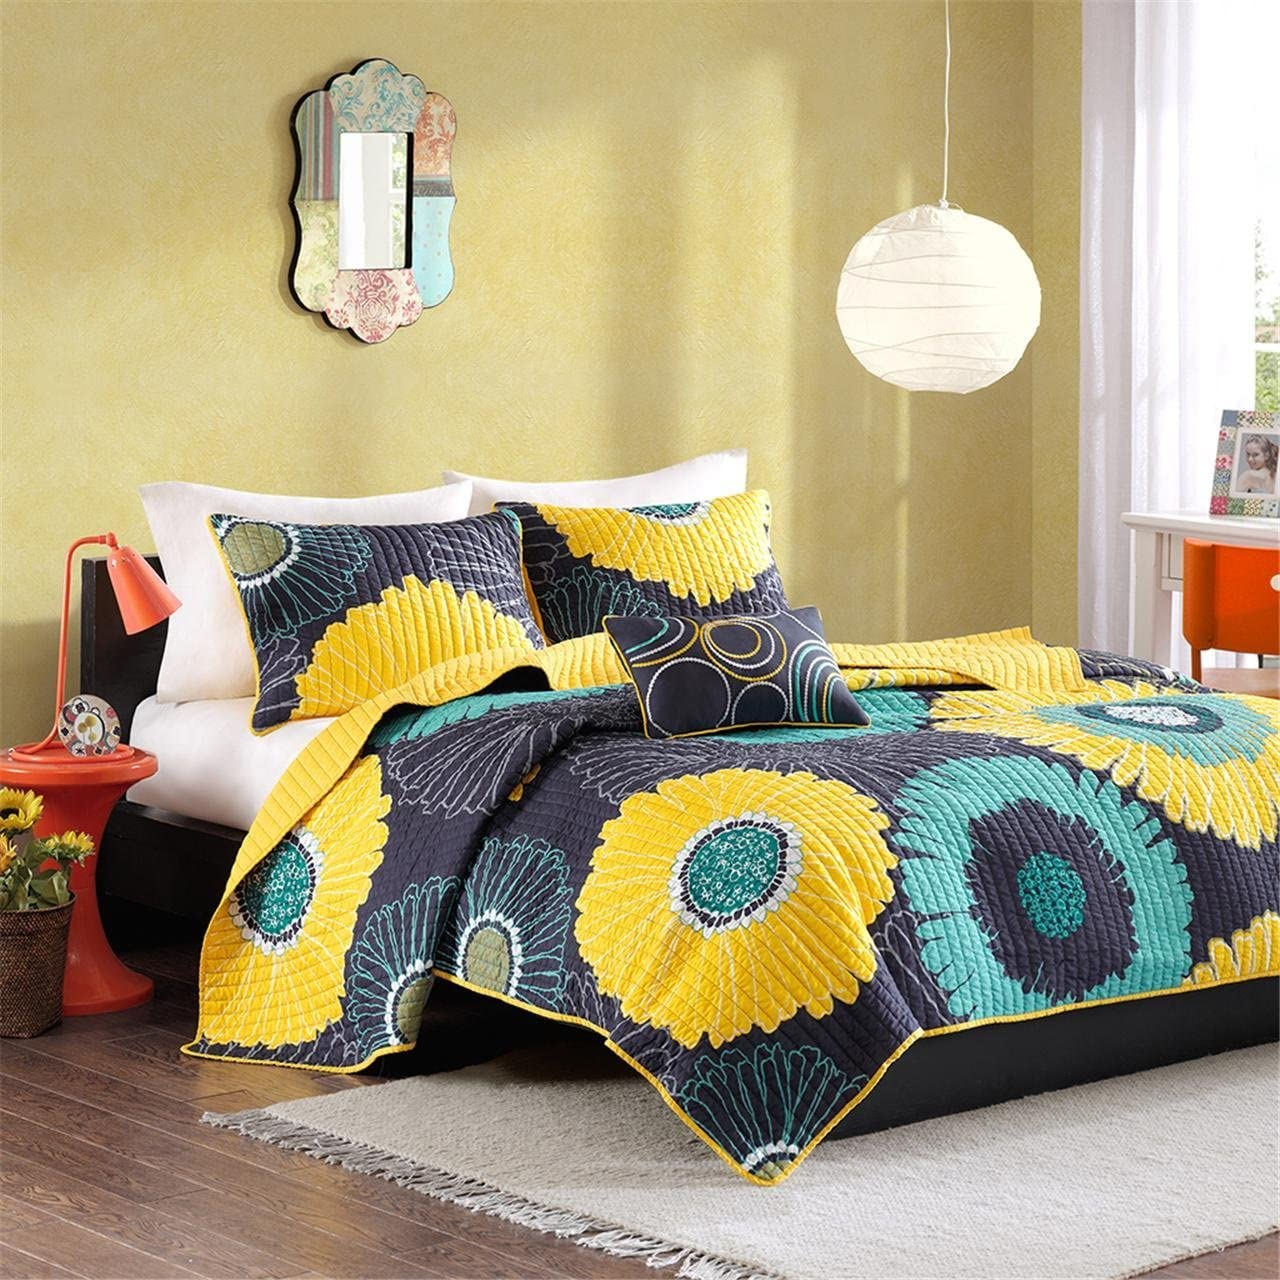 MI ZONE Cozy Quilt Set, Casual Modern Vibrant Color Design All Season Teen Bedding, Coverlet Bedspread, Decorative Pillow, Girls Bedroom Décor, Full/Queen, Yellow, 4 Piece